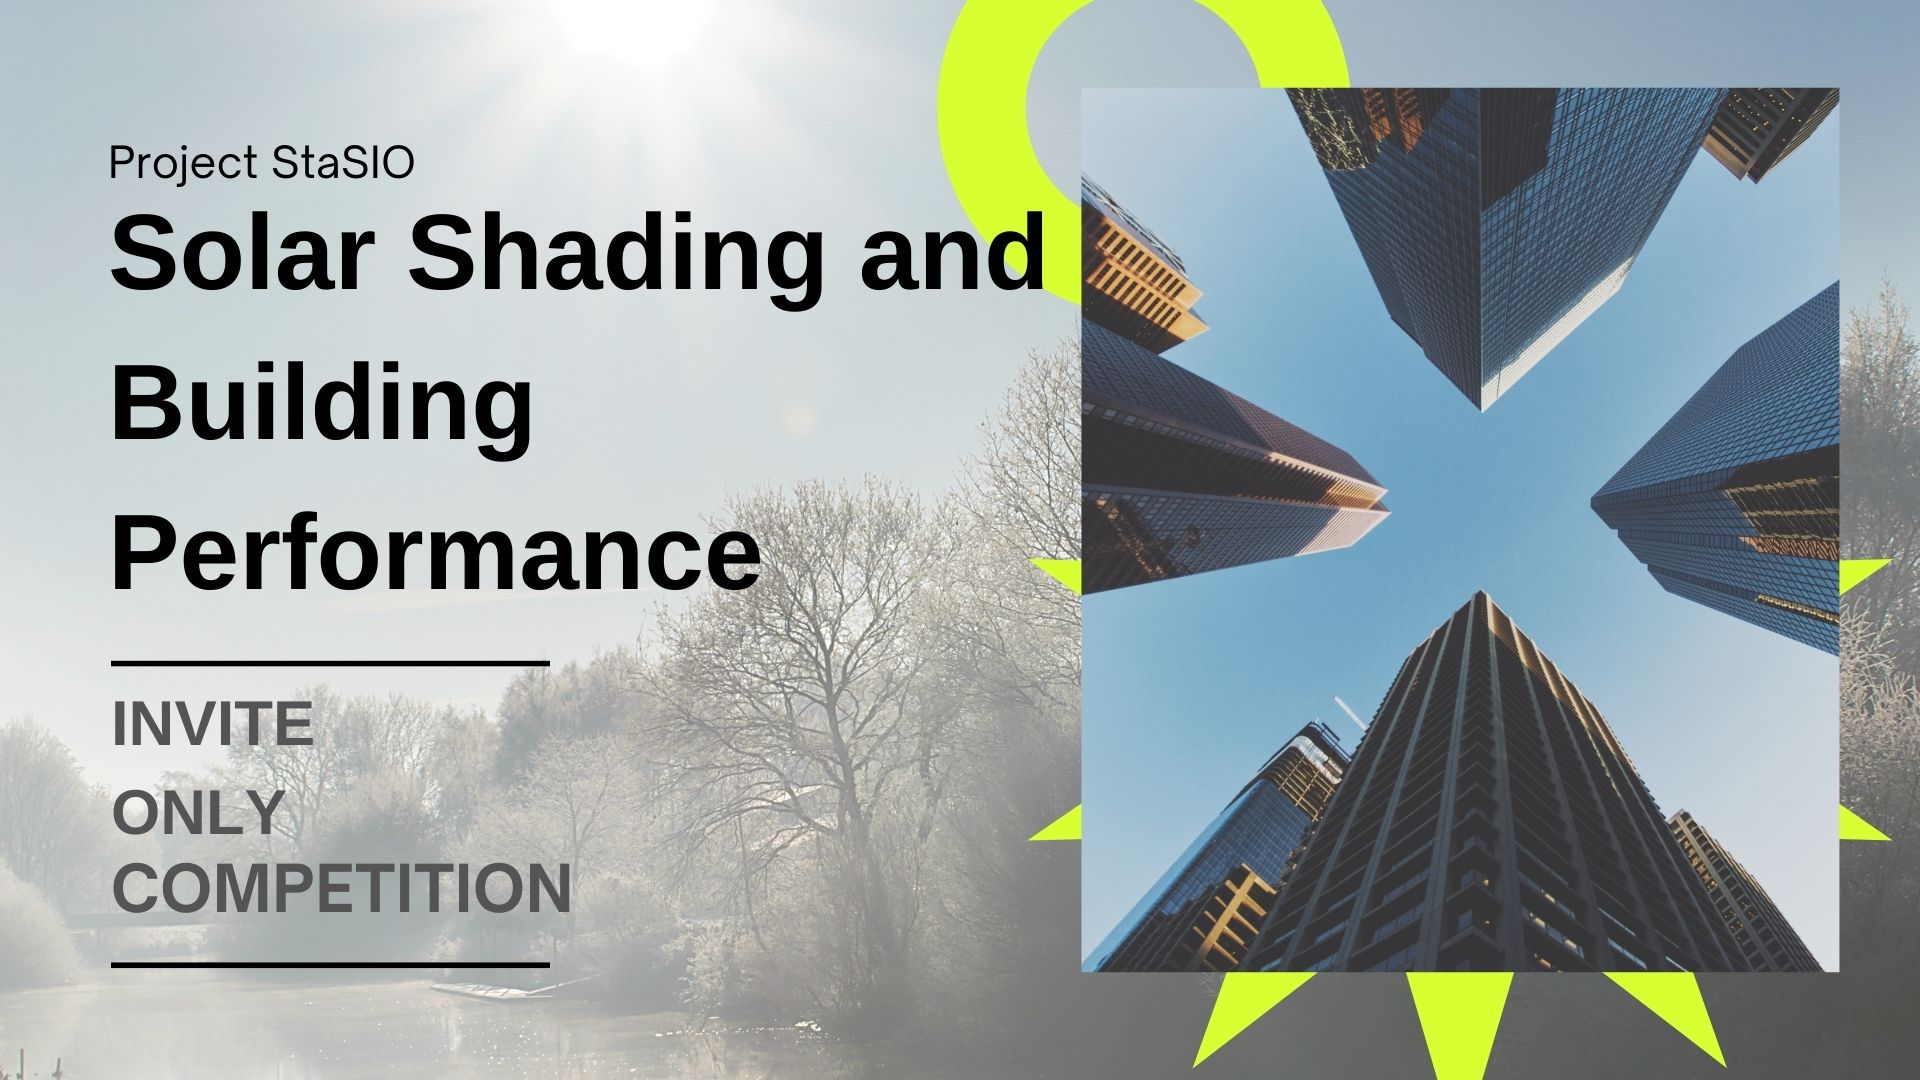 Solar Shading and Building Performance